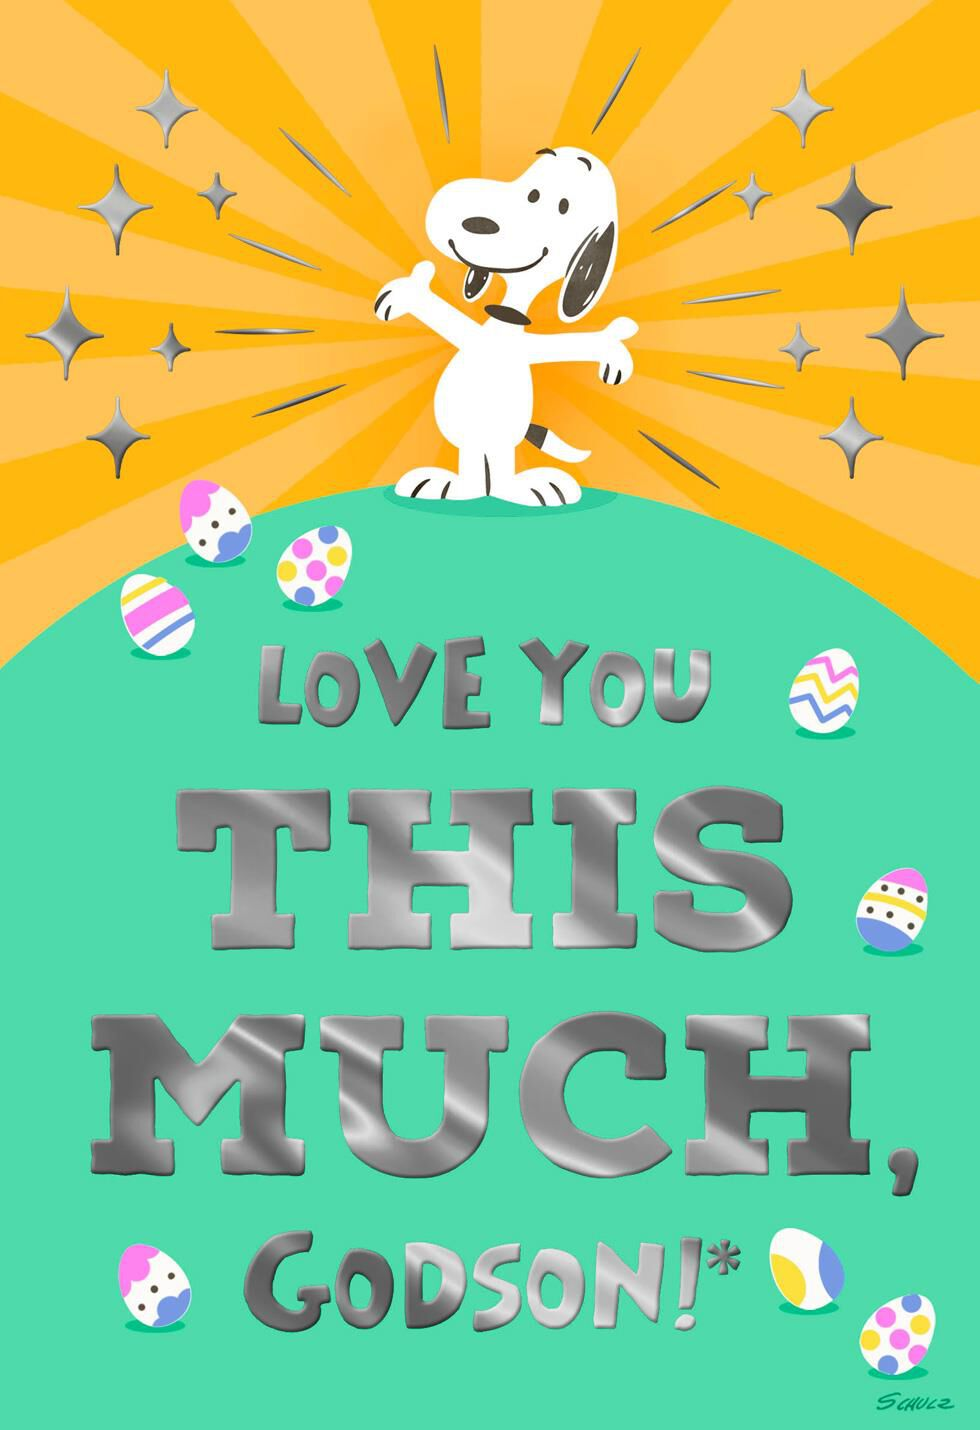 Charlie Brown Fall Wallpaper Peanuts 174 Snoopy Love You This Much Godson Easter Card